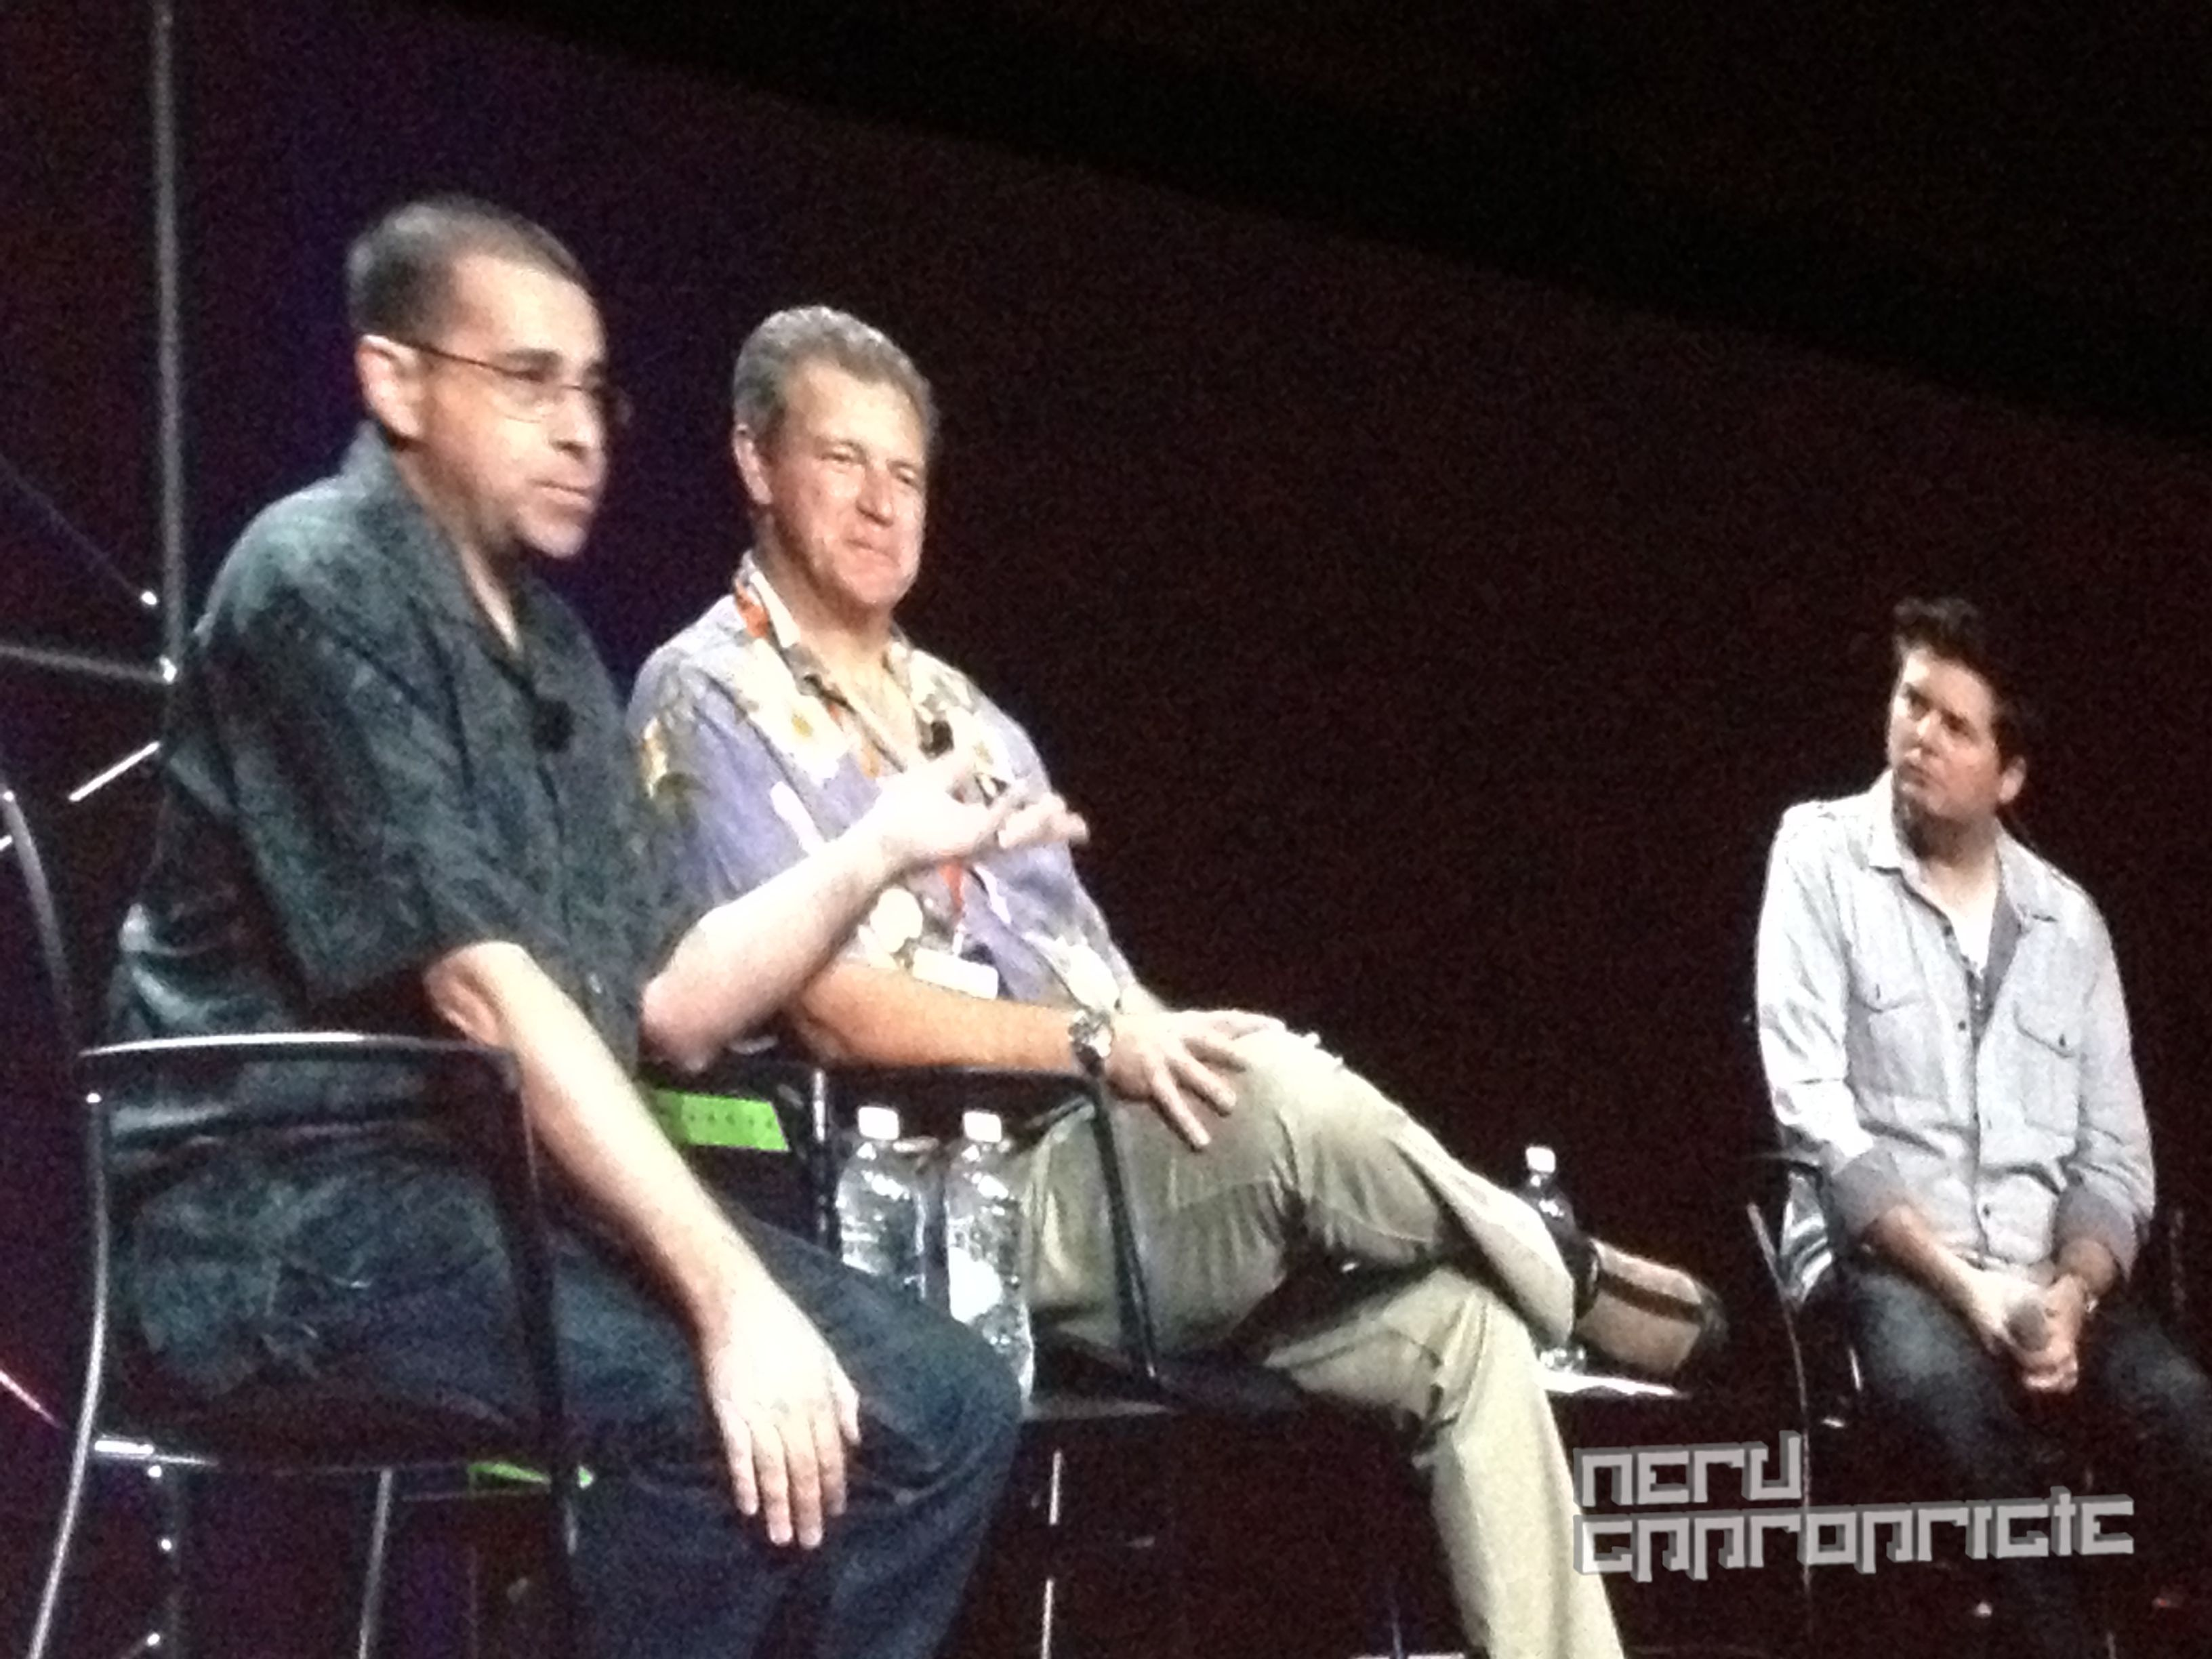 Star Wars Celebration VI: Puppet Masters Tim Rose And Mike Quinn Take The Stage